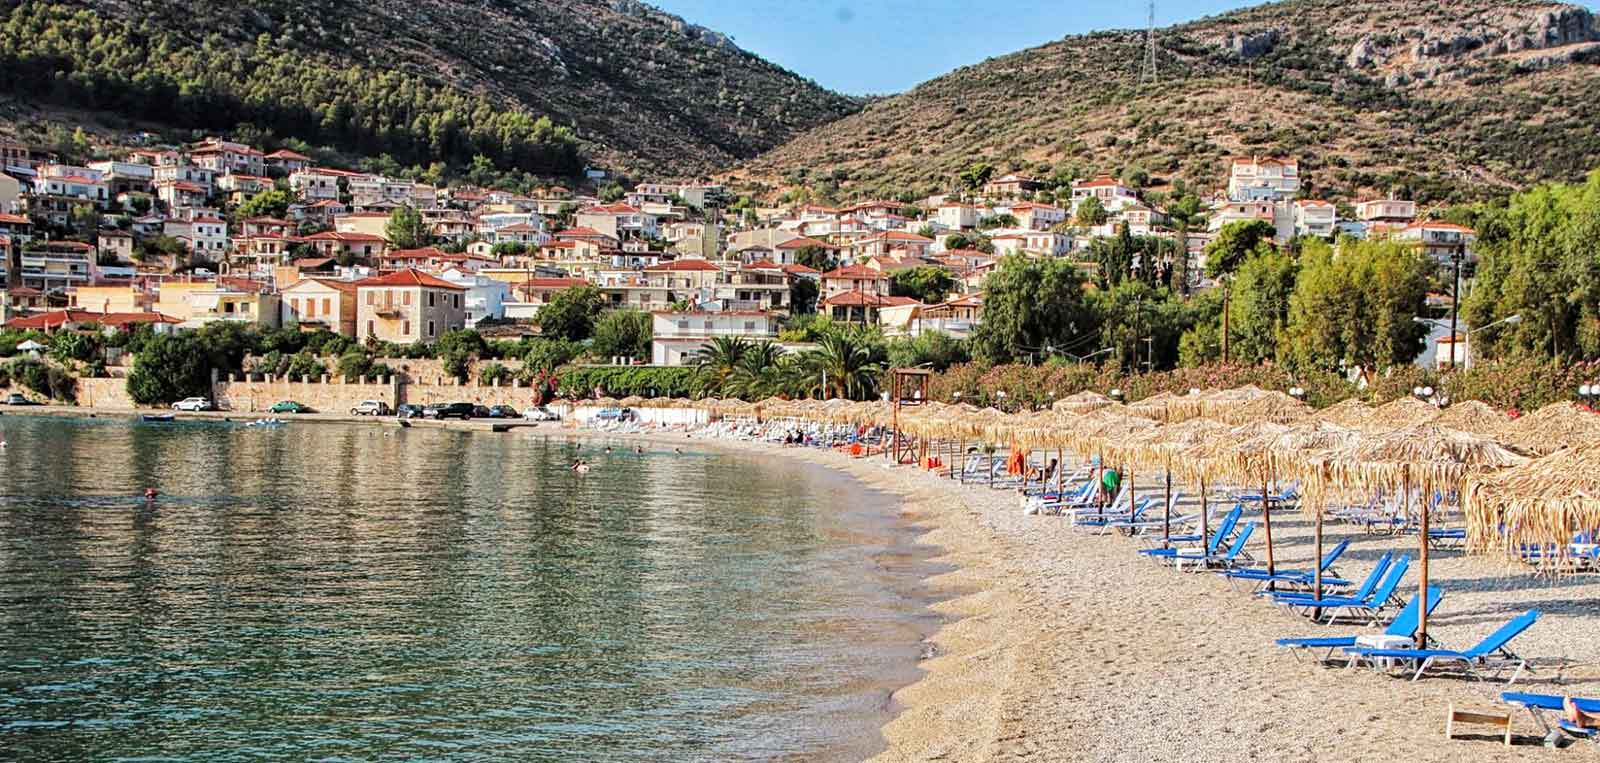 Publick beach in Kiveri village close to Nafplion